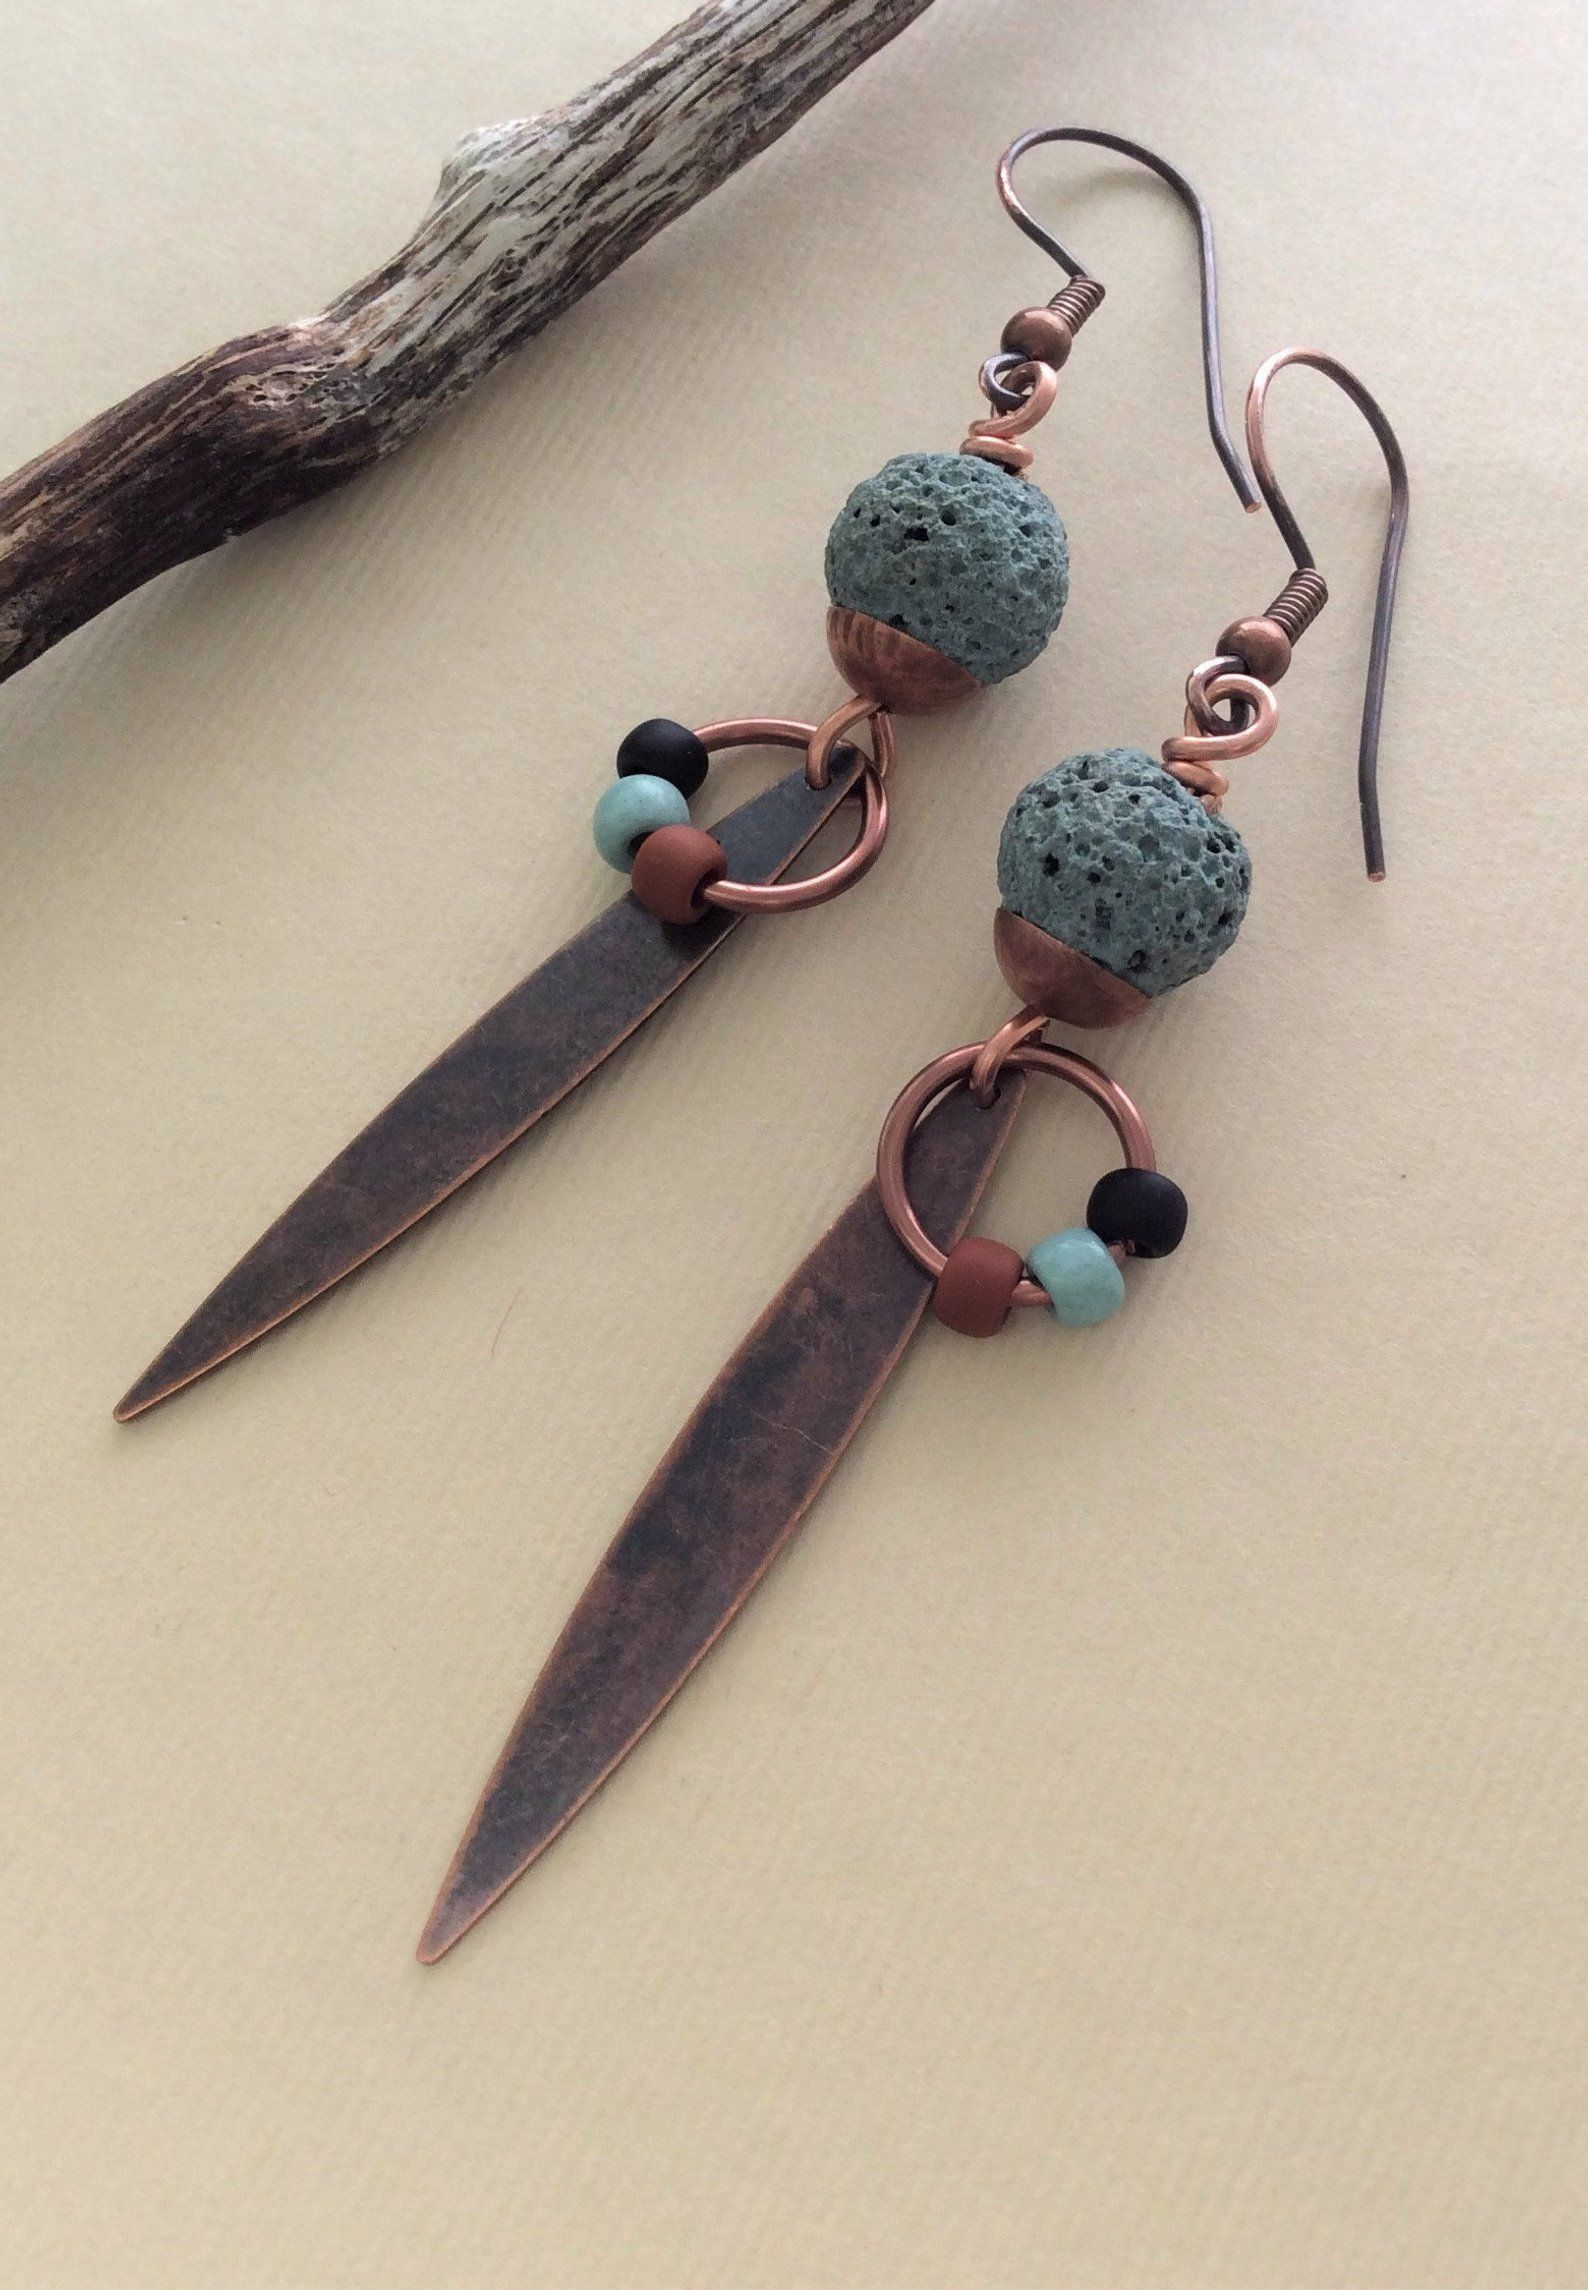 Photo of Turquoise Dangles, Lava Stone Earrings, Artisan Earrings, Bohemian Dangles, Copper Jewelry, Rustic Earrings, Handmade